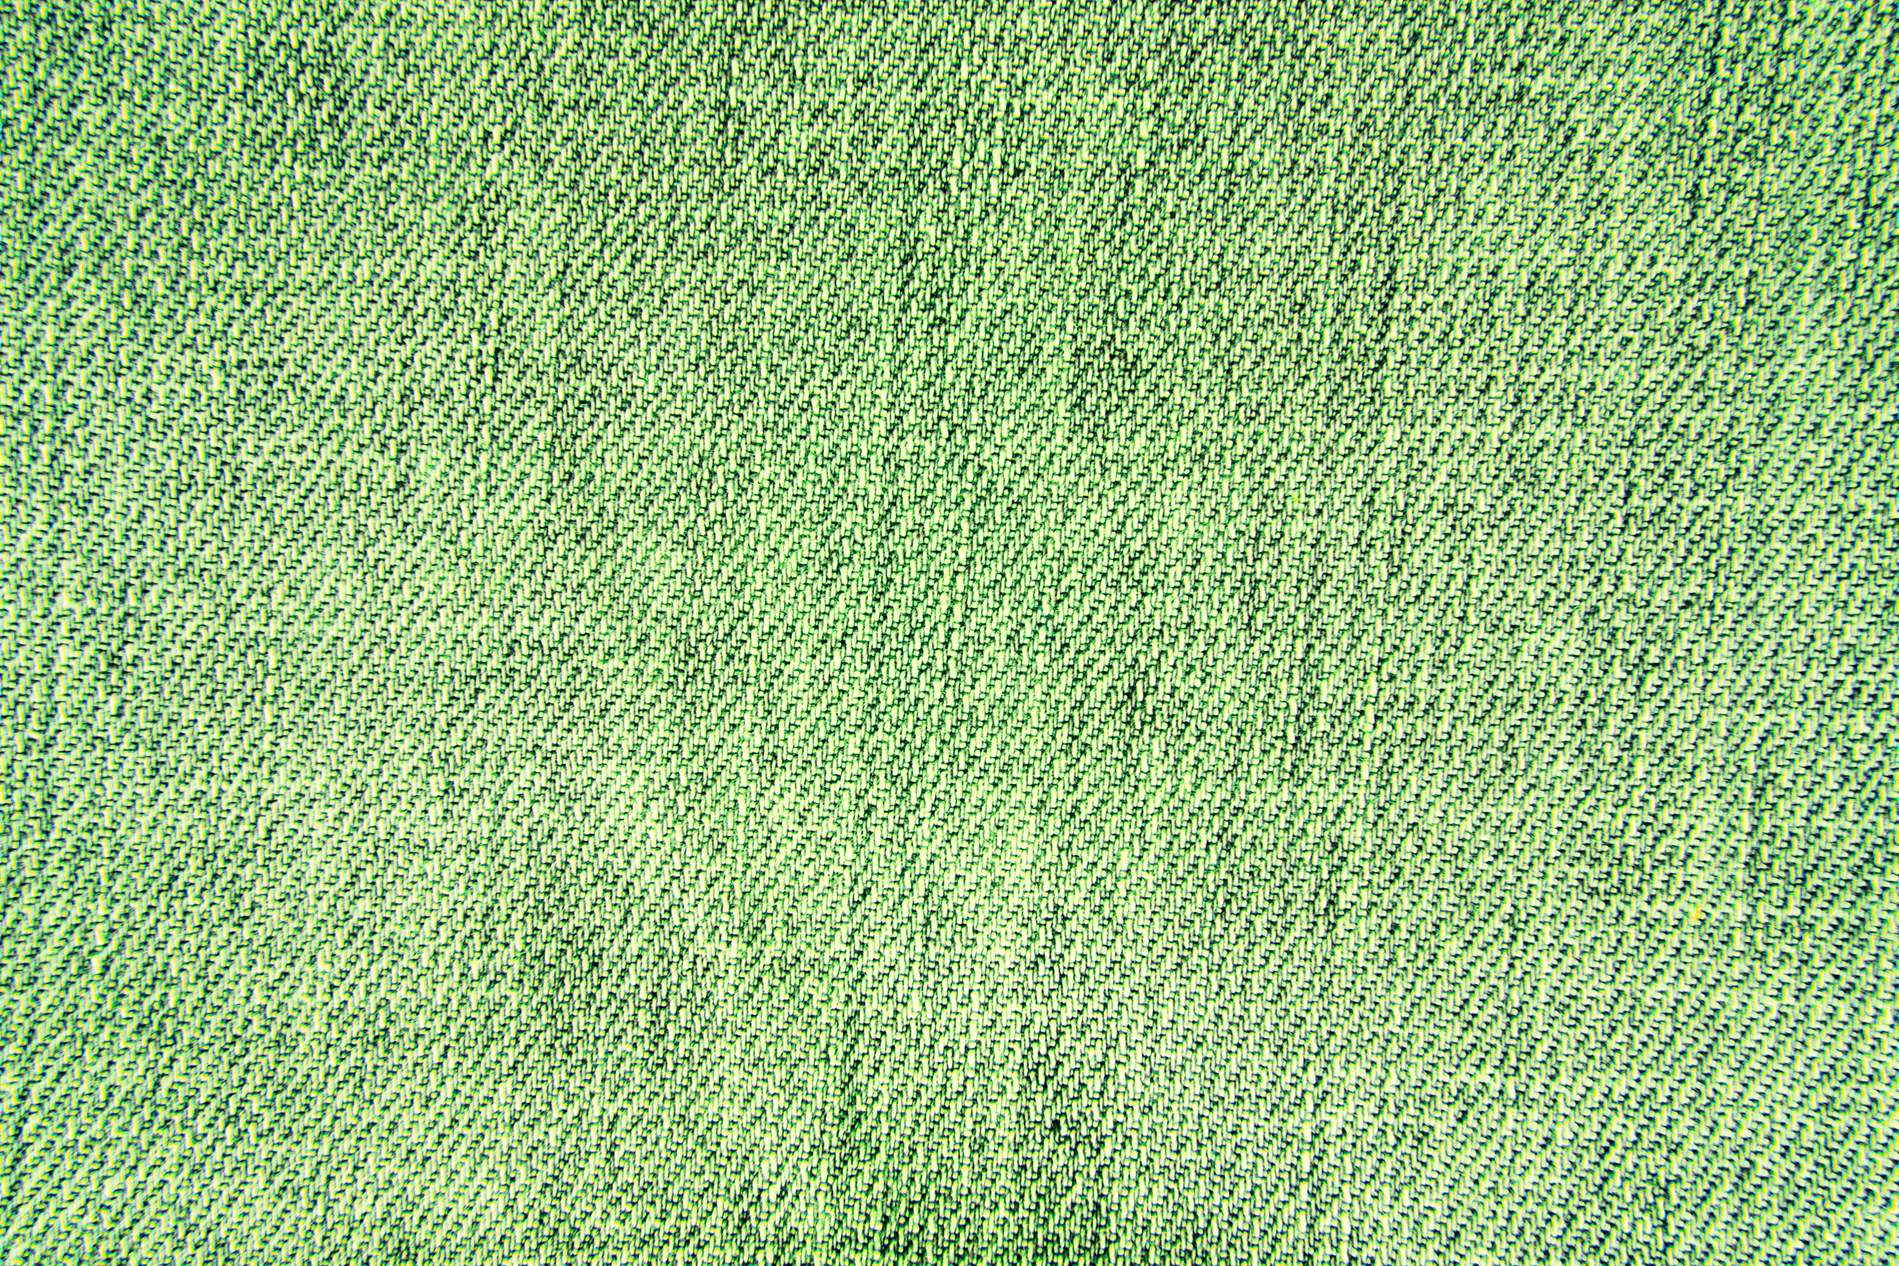 Green Vintage Fabric Texture Background